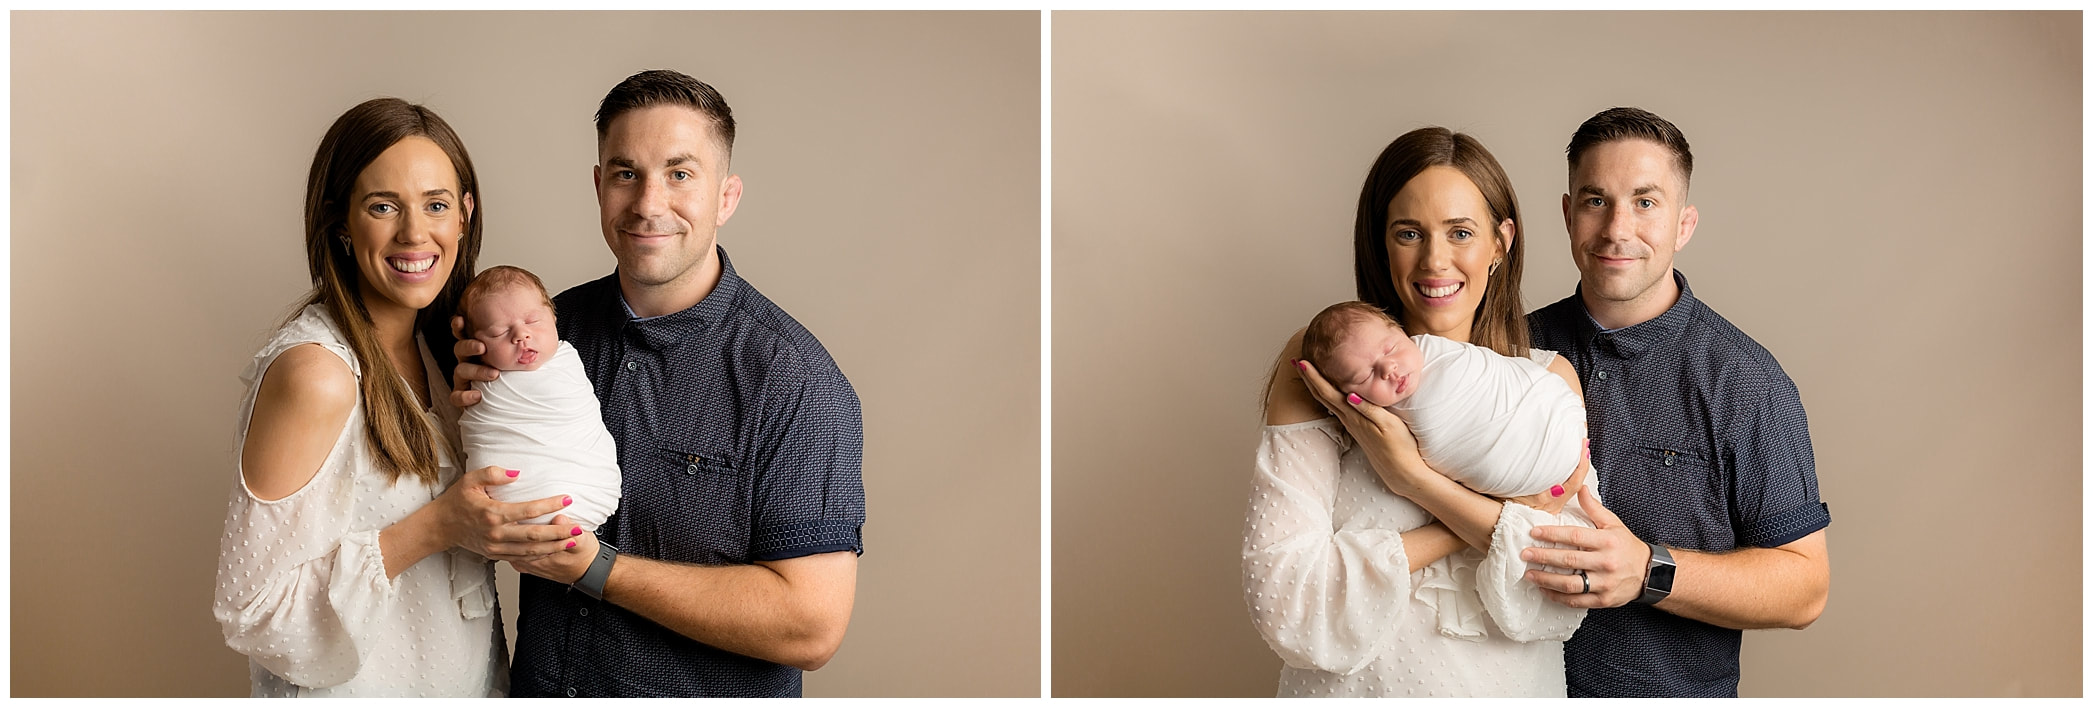 Parent images with newborn by Lynne Harper Photography